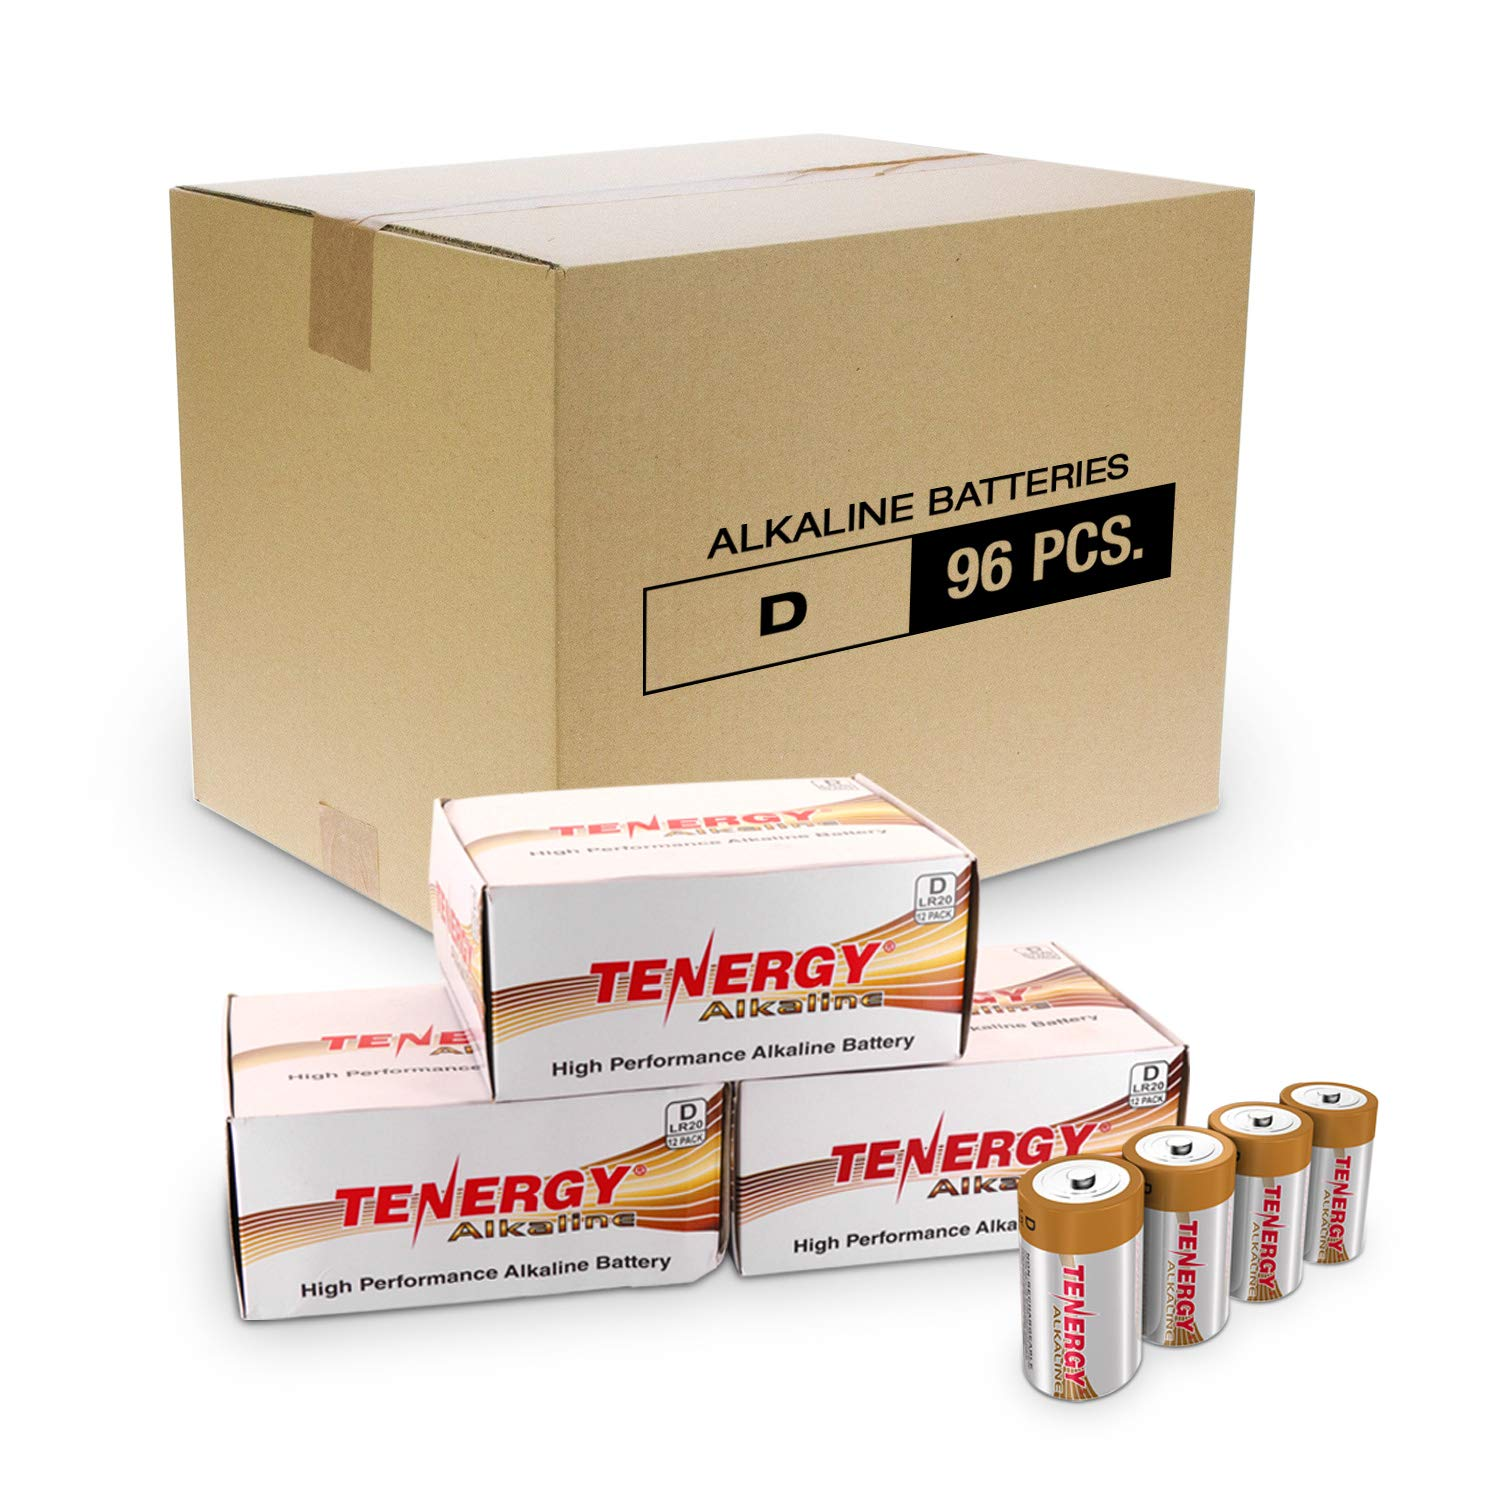 Tenergy 1.5V D Alkaline LR20 Battery, High Performance D Non-Rechargeable Batteries for Clocks, Remotes, Toys & Electronic Devices, Replacement D Cell Batteries, 96-Pack by Tenergy